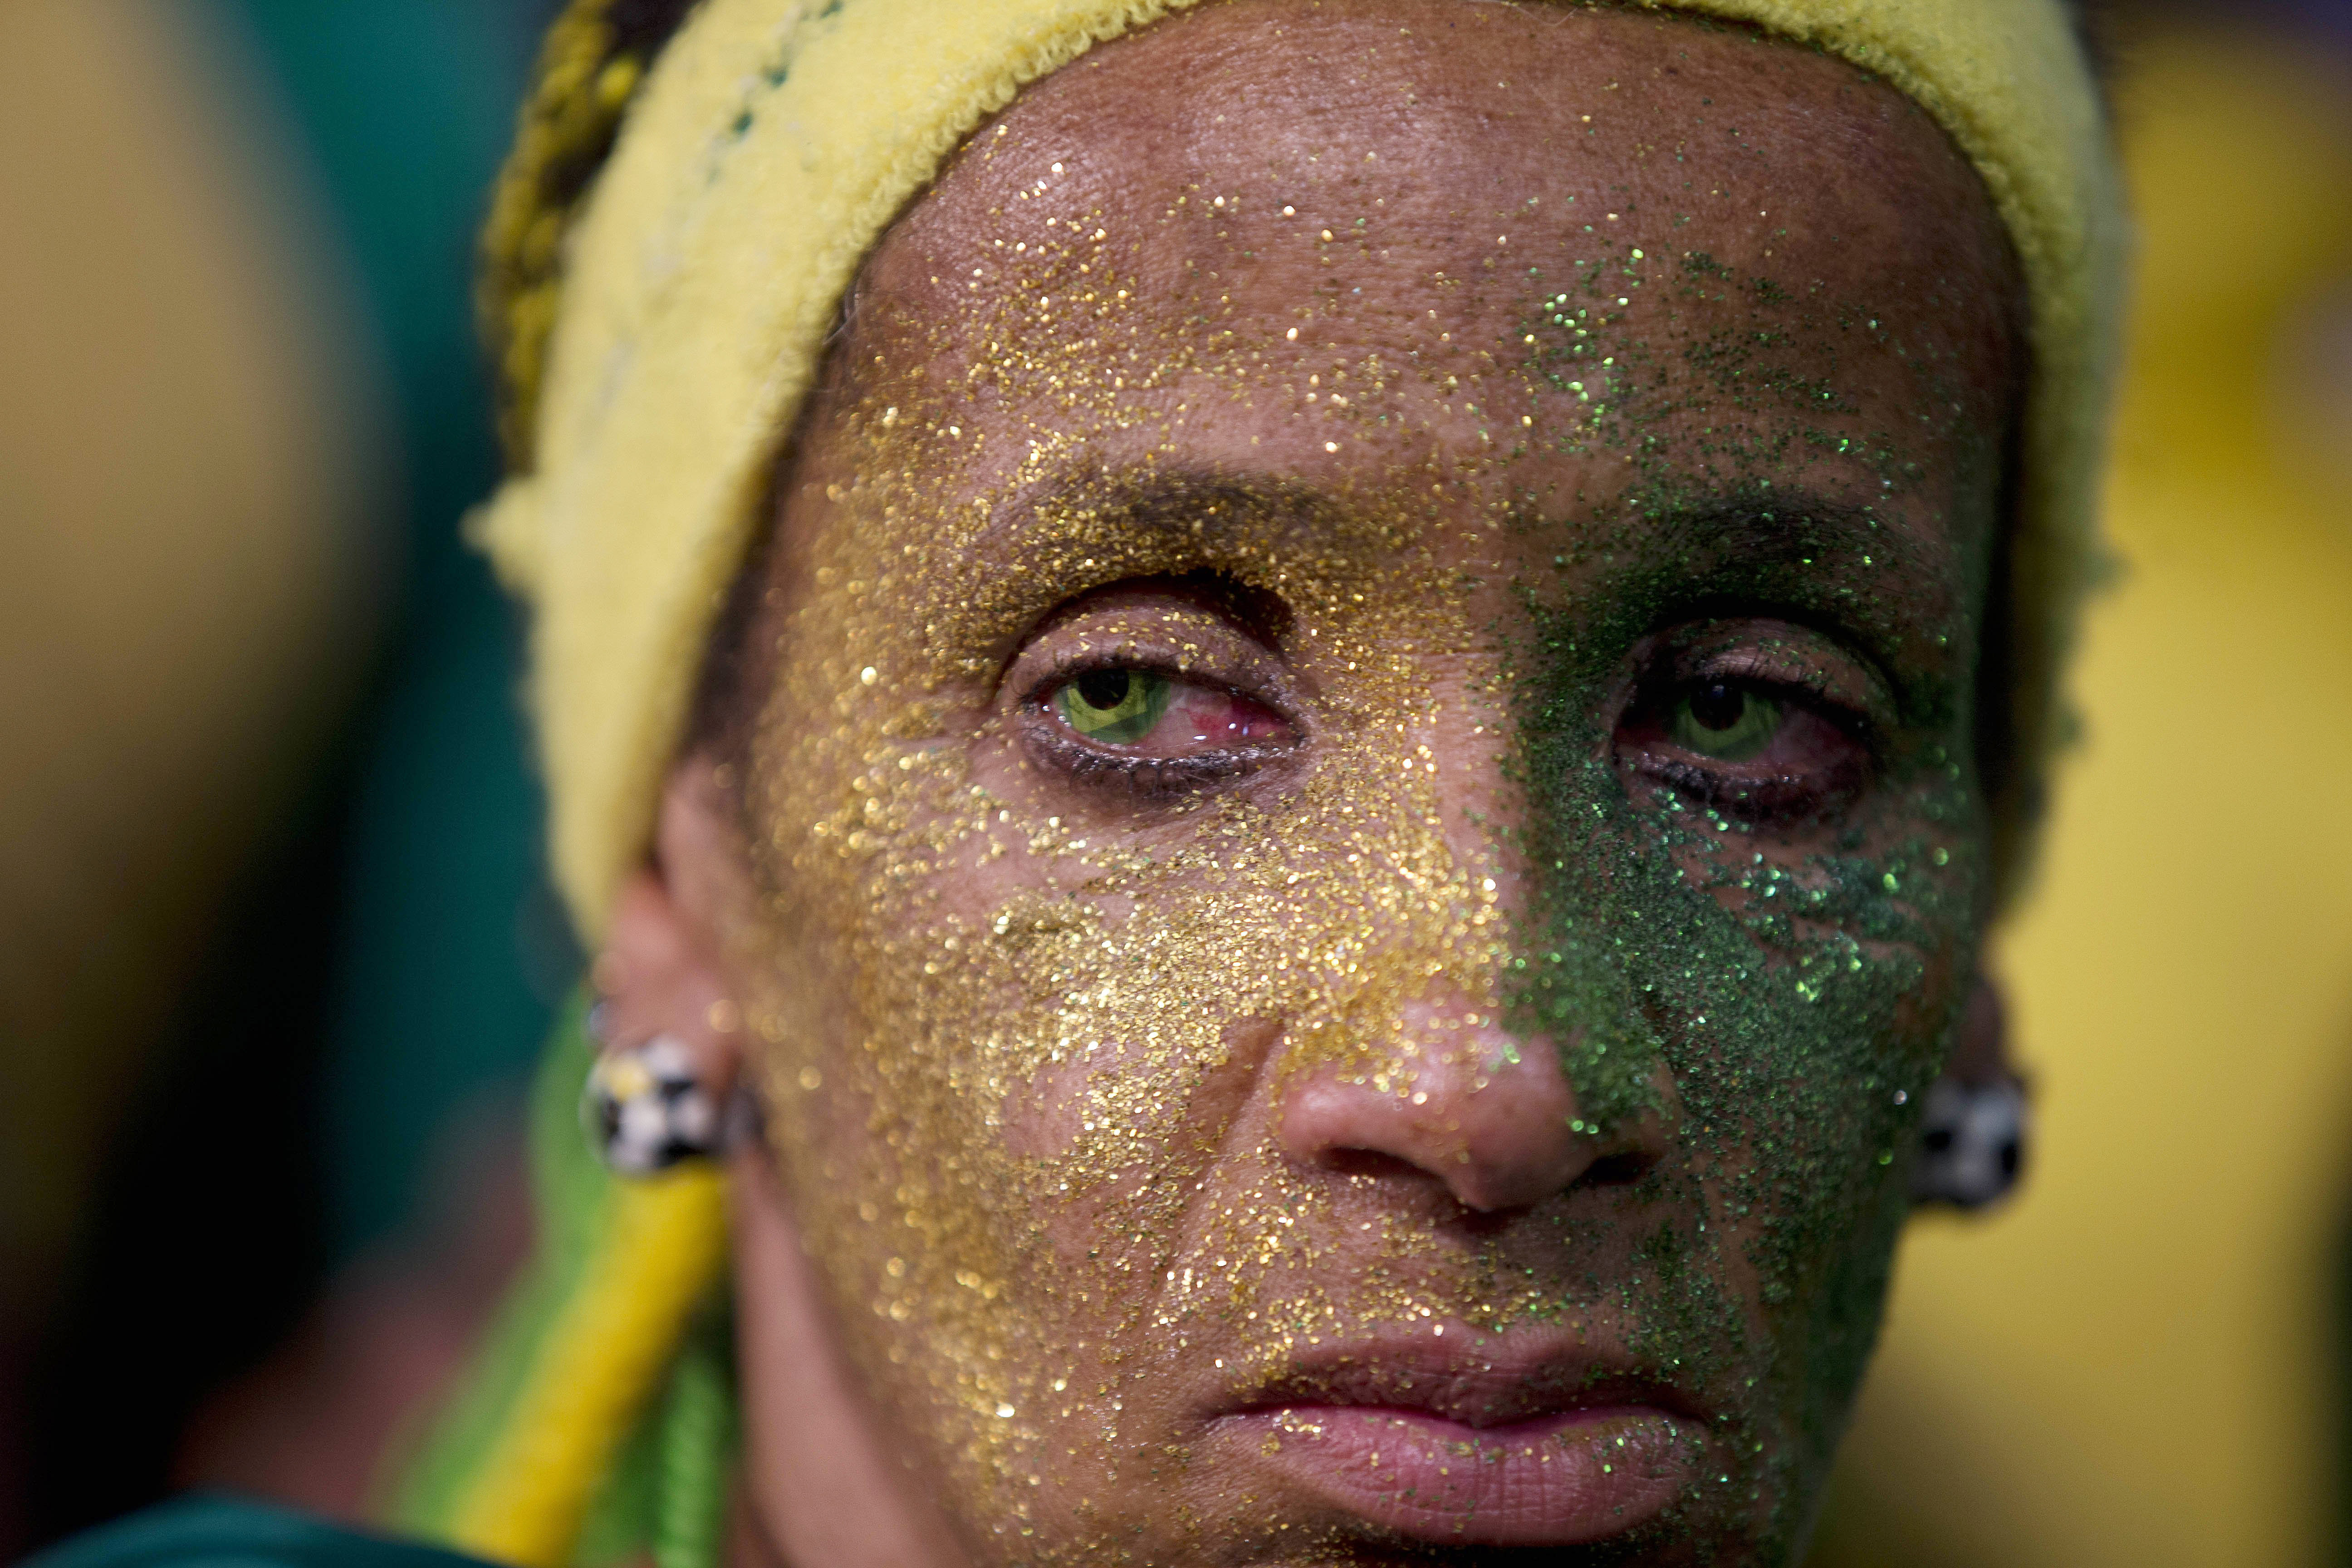 A fan of the Brazilian national soccer team looks on as her team loses to Germany in a semi-final match in Sao Paulo, Brazil on July 8, 2014.